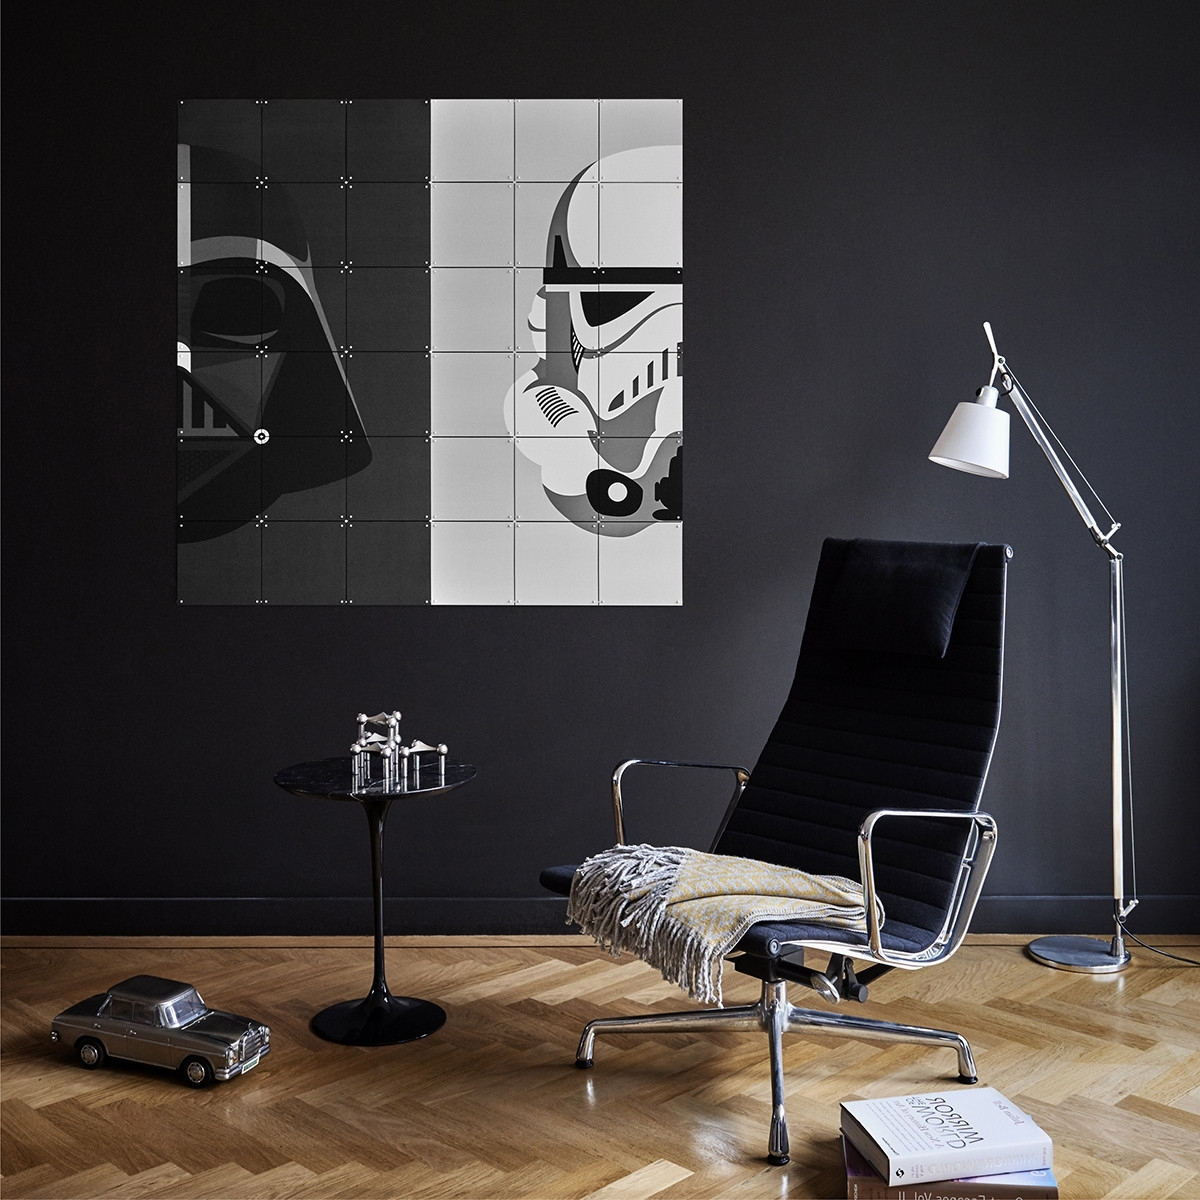 Darth Vader Wall Art With Widely Used Star Wars Stormtrooper/darth Vader Wall Art Panels – The Basiq (Gallery 3 of 20)